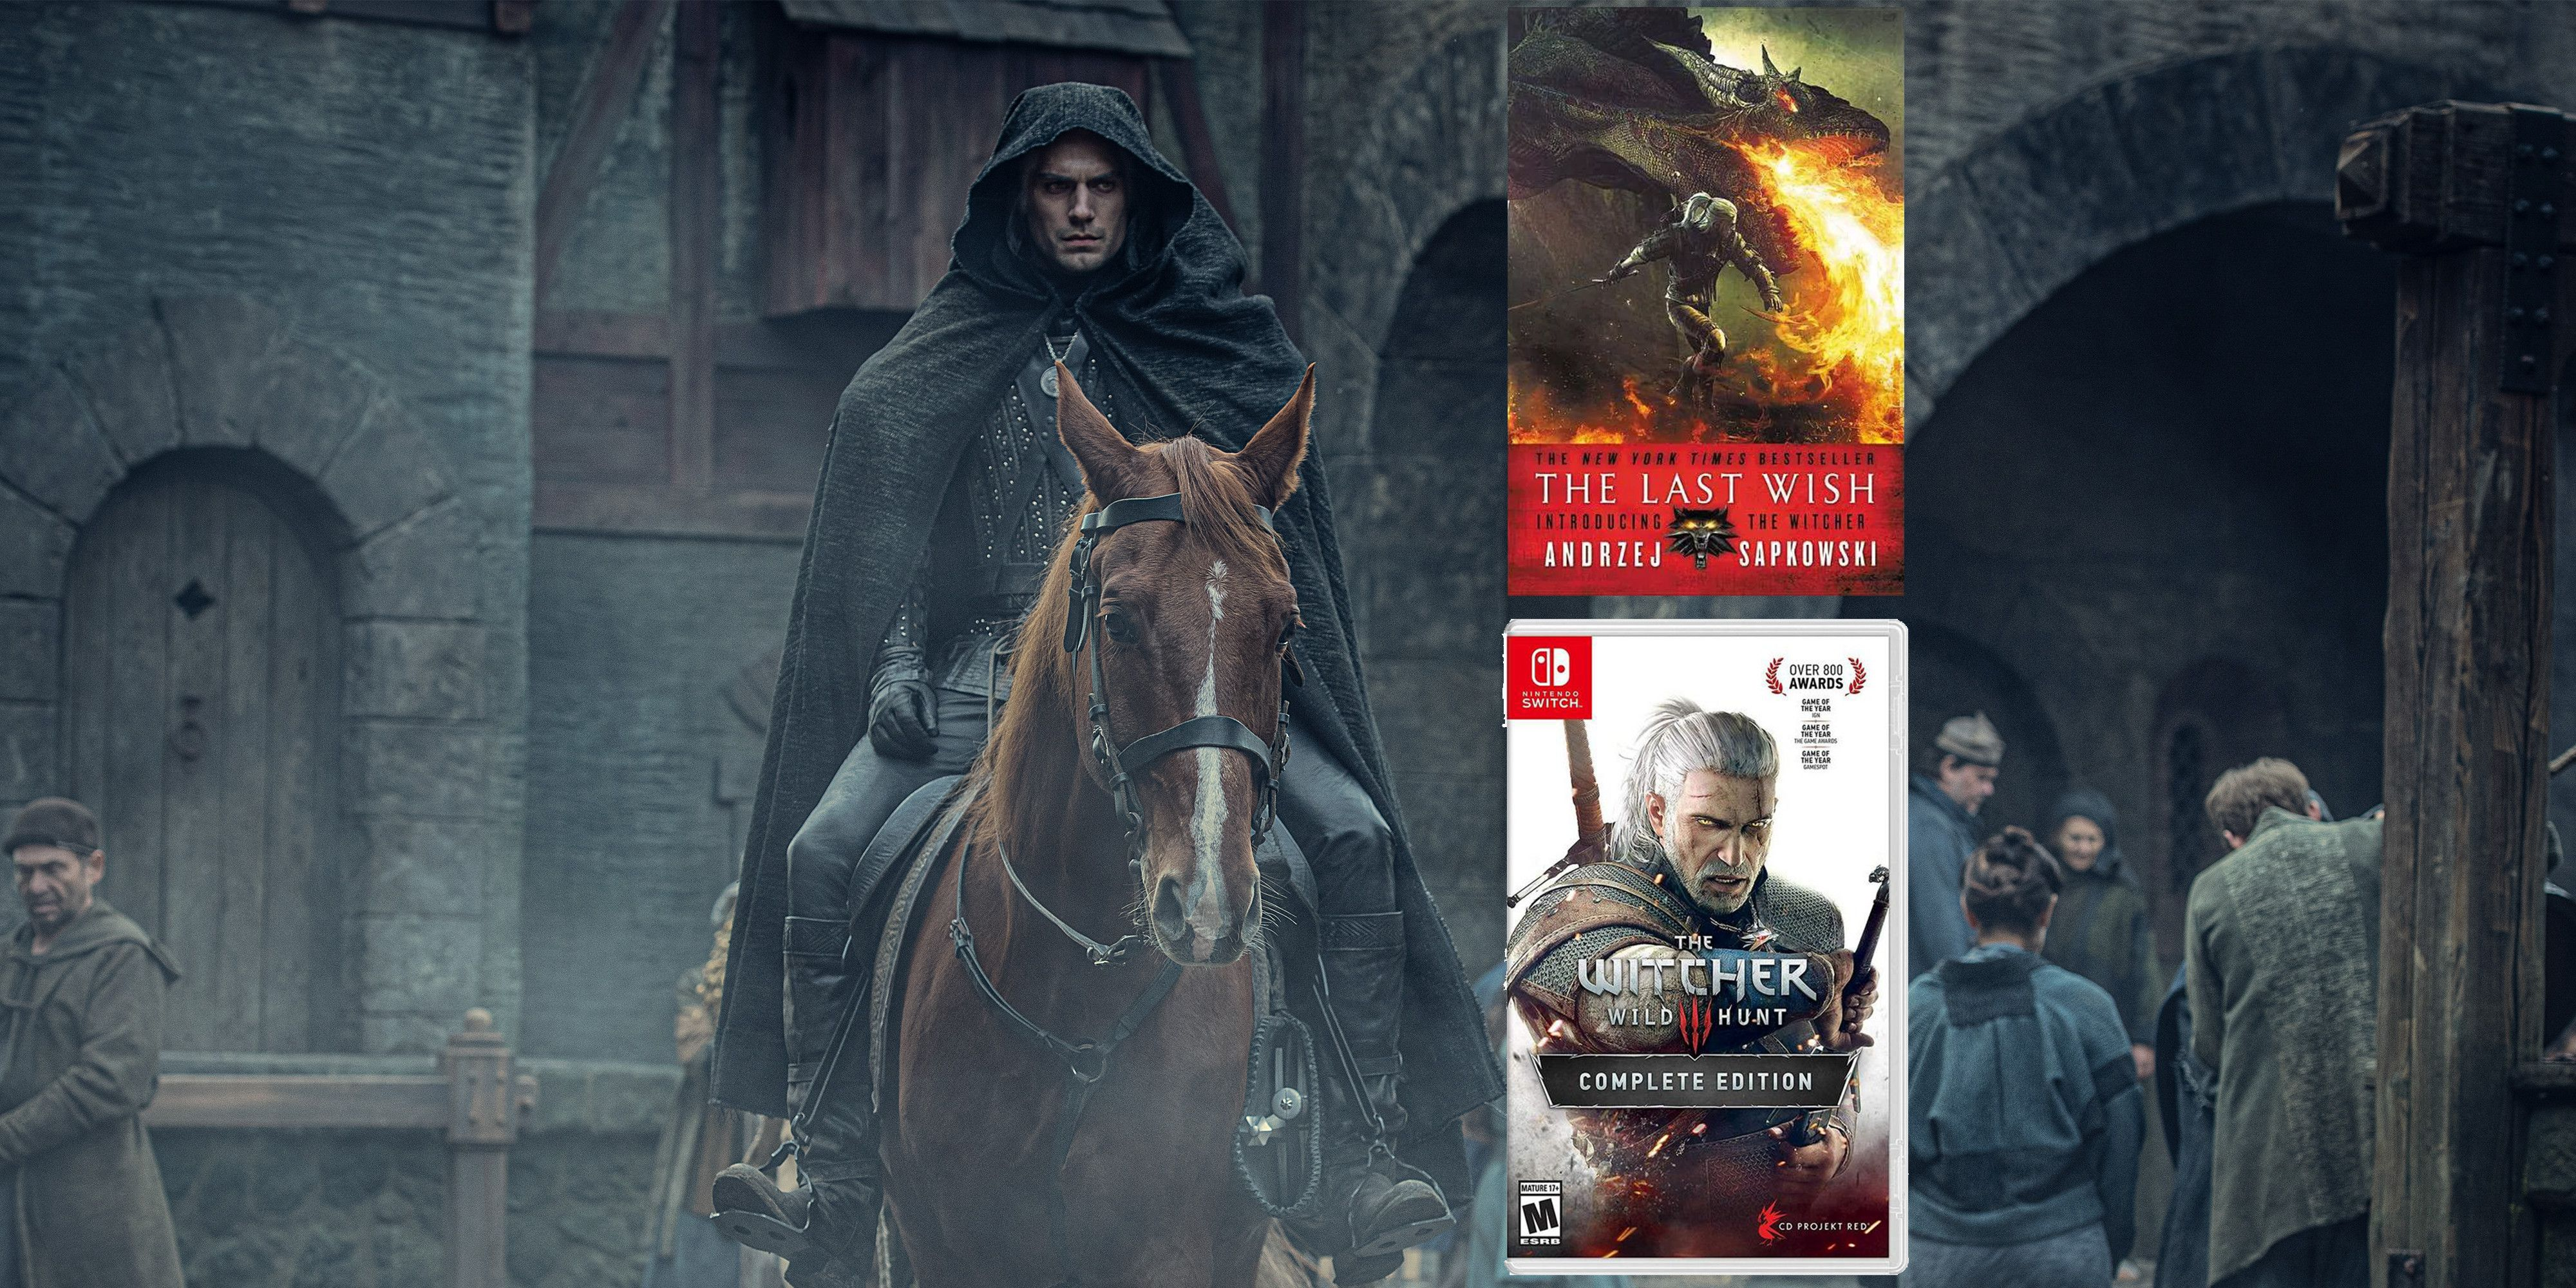 Netflix's The Witcher Is Massive Streaming Hit. But There's a Lot More to Explore in This Fantasy World.